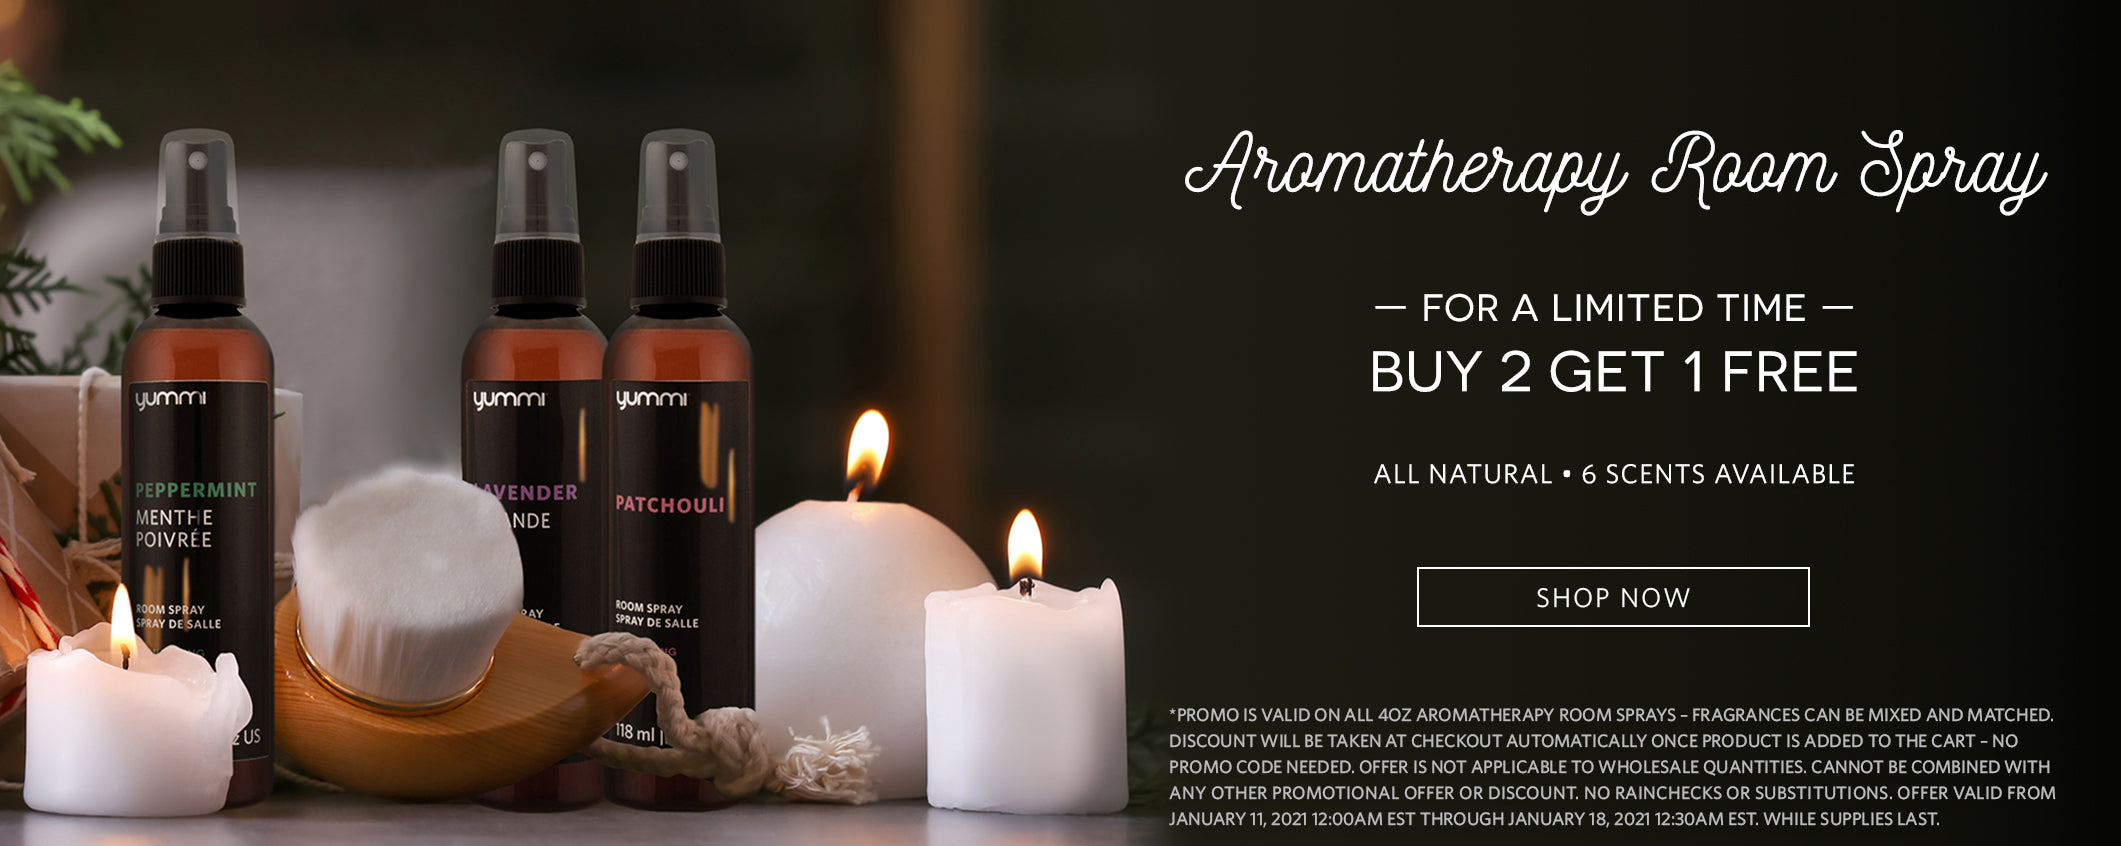 Aromatherapy Room Spray. For a limited time buy 2 get 1 free. All natural, 6 scents